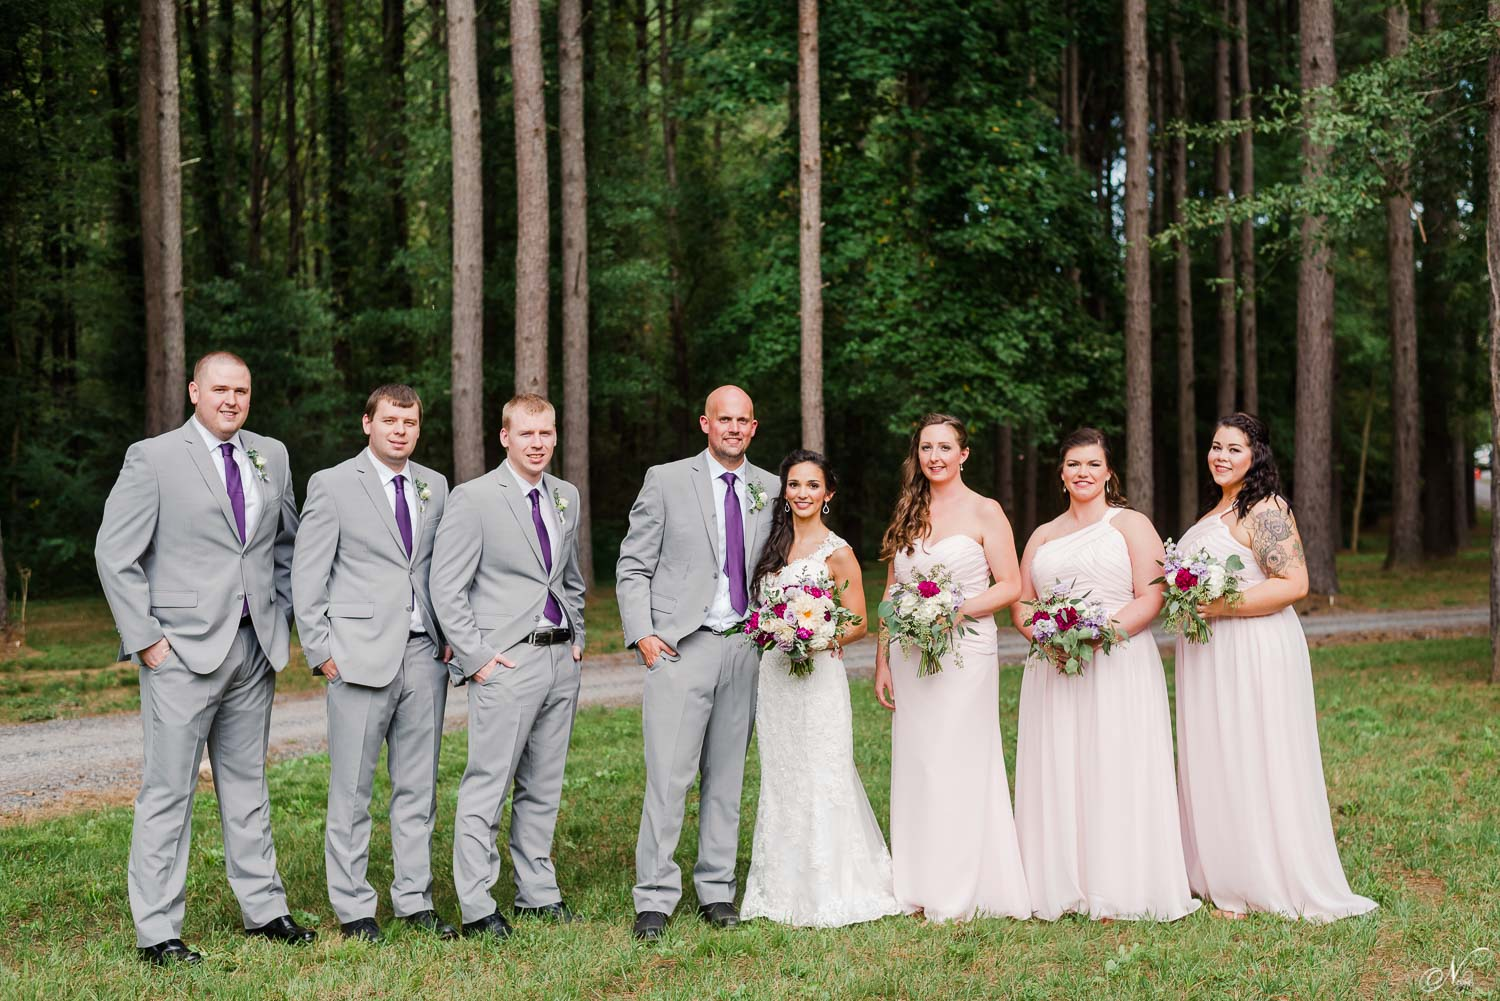 wedding party with pine trees in background